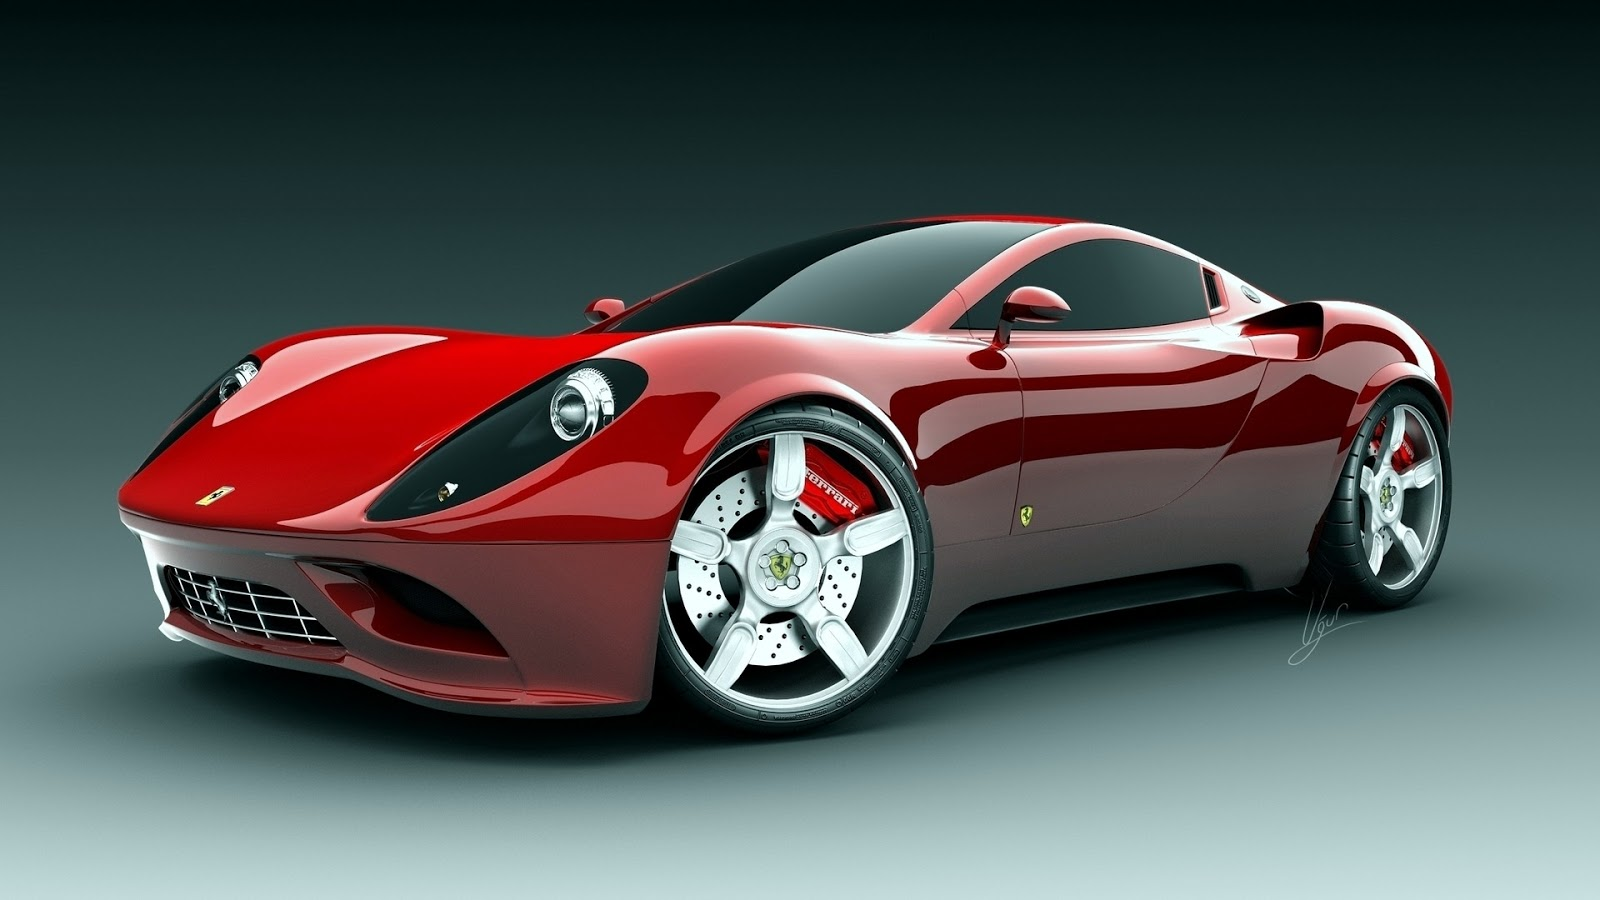 http://1.bp.blogspot.com/-HcQlOxYIWxw/UZ0QPHaR7iI/AAAAAAAAAvs/fzn9Lz1TWUc/s1600/iron-man-technology-tech-bug-net-uploads-red-ferrari-car-hd-280381.jpg